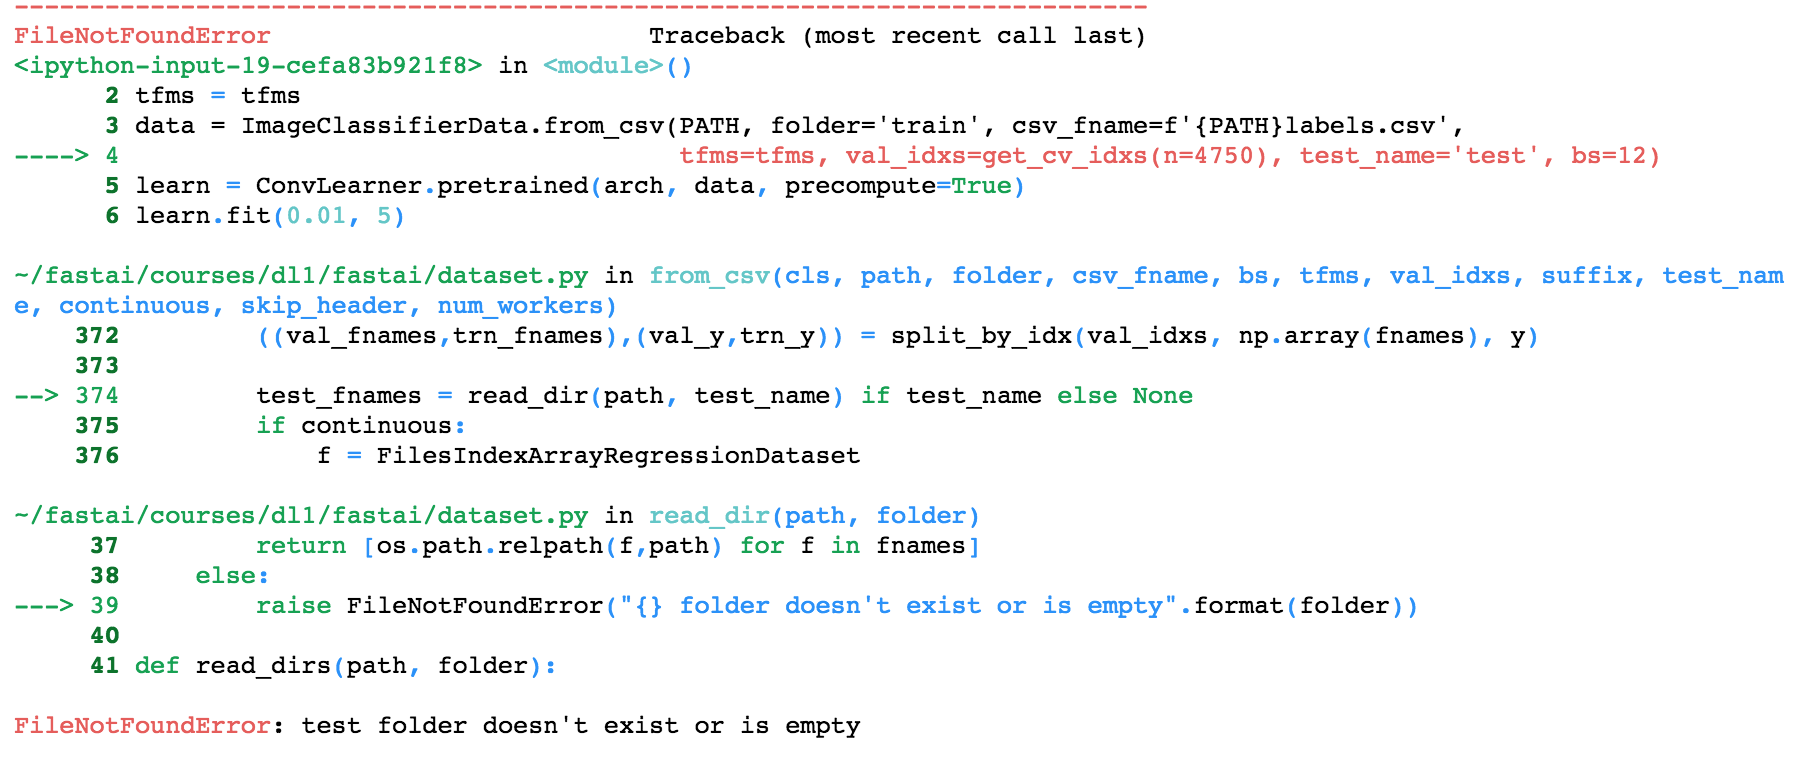 Raise an error if test_name='test' but the test folder is empty or